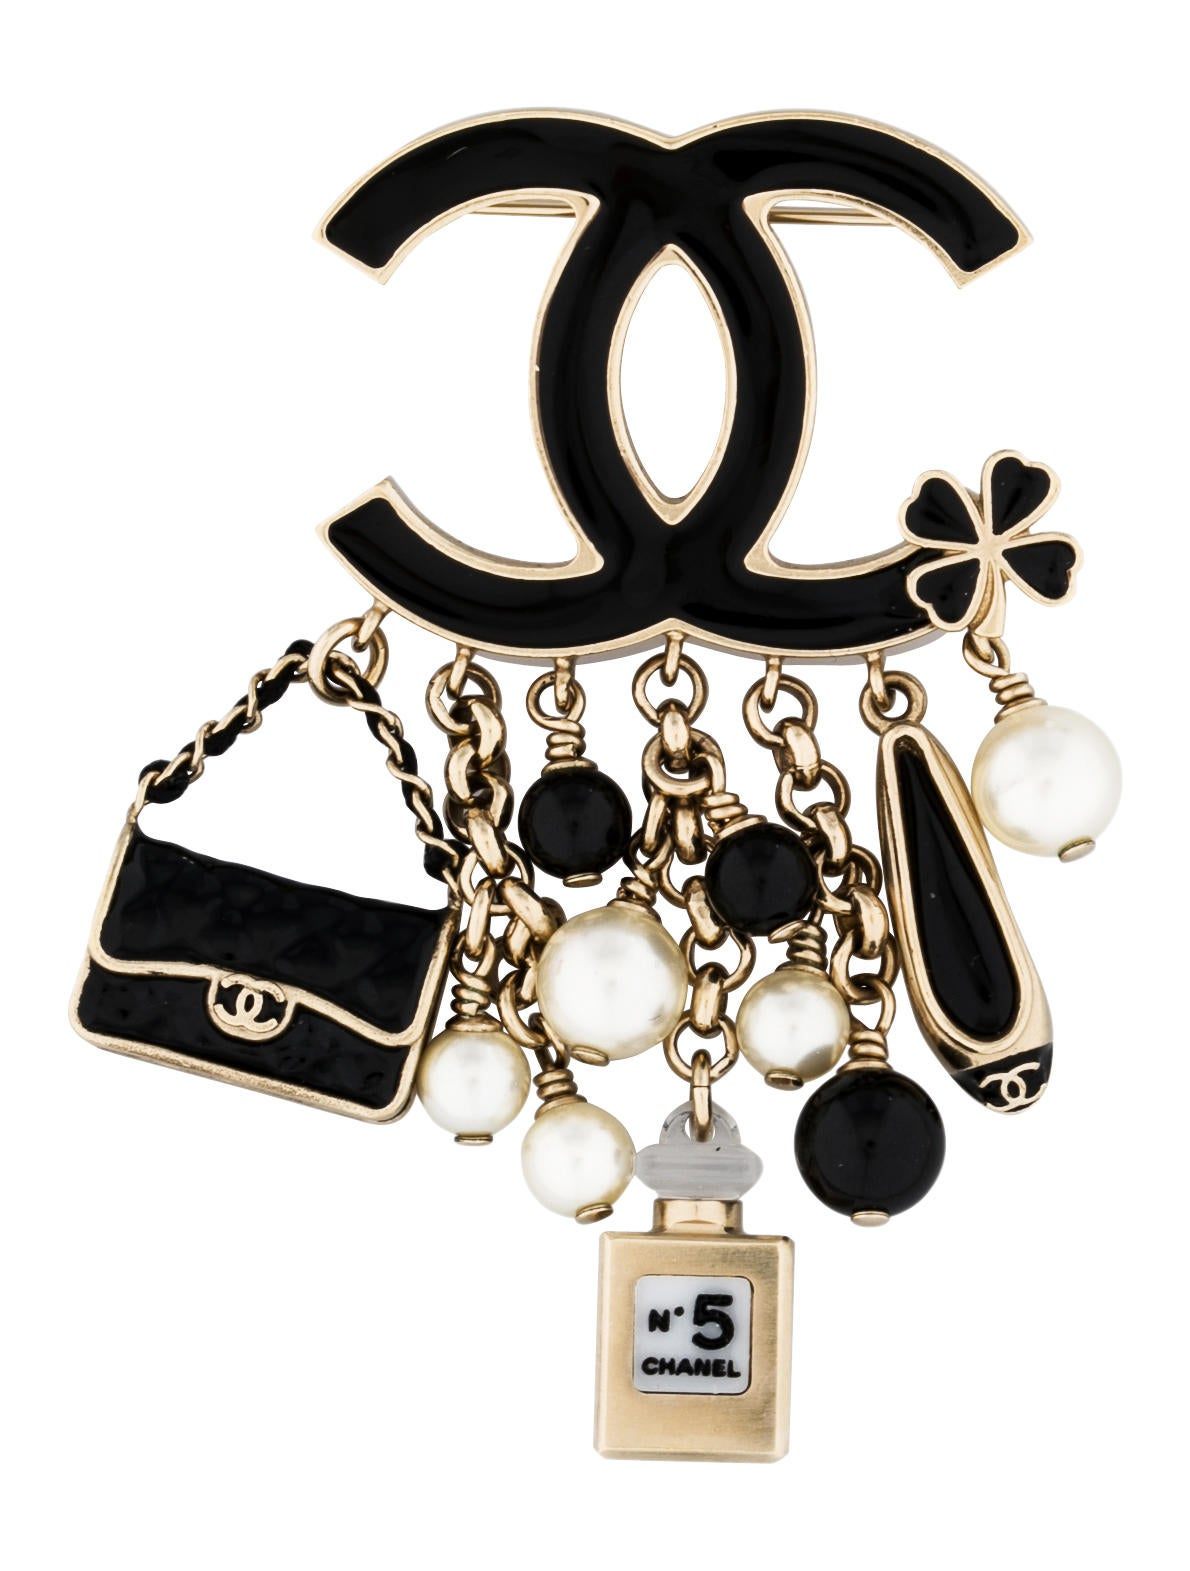 83e53792690 Chanel CC Charm Brooch - Brooches - CHA51301 | The RealReal